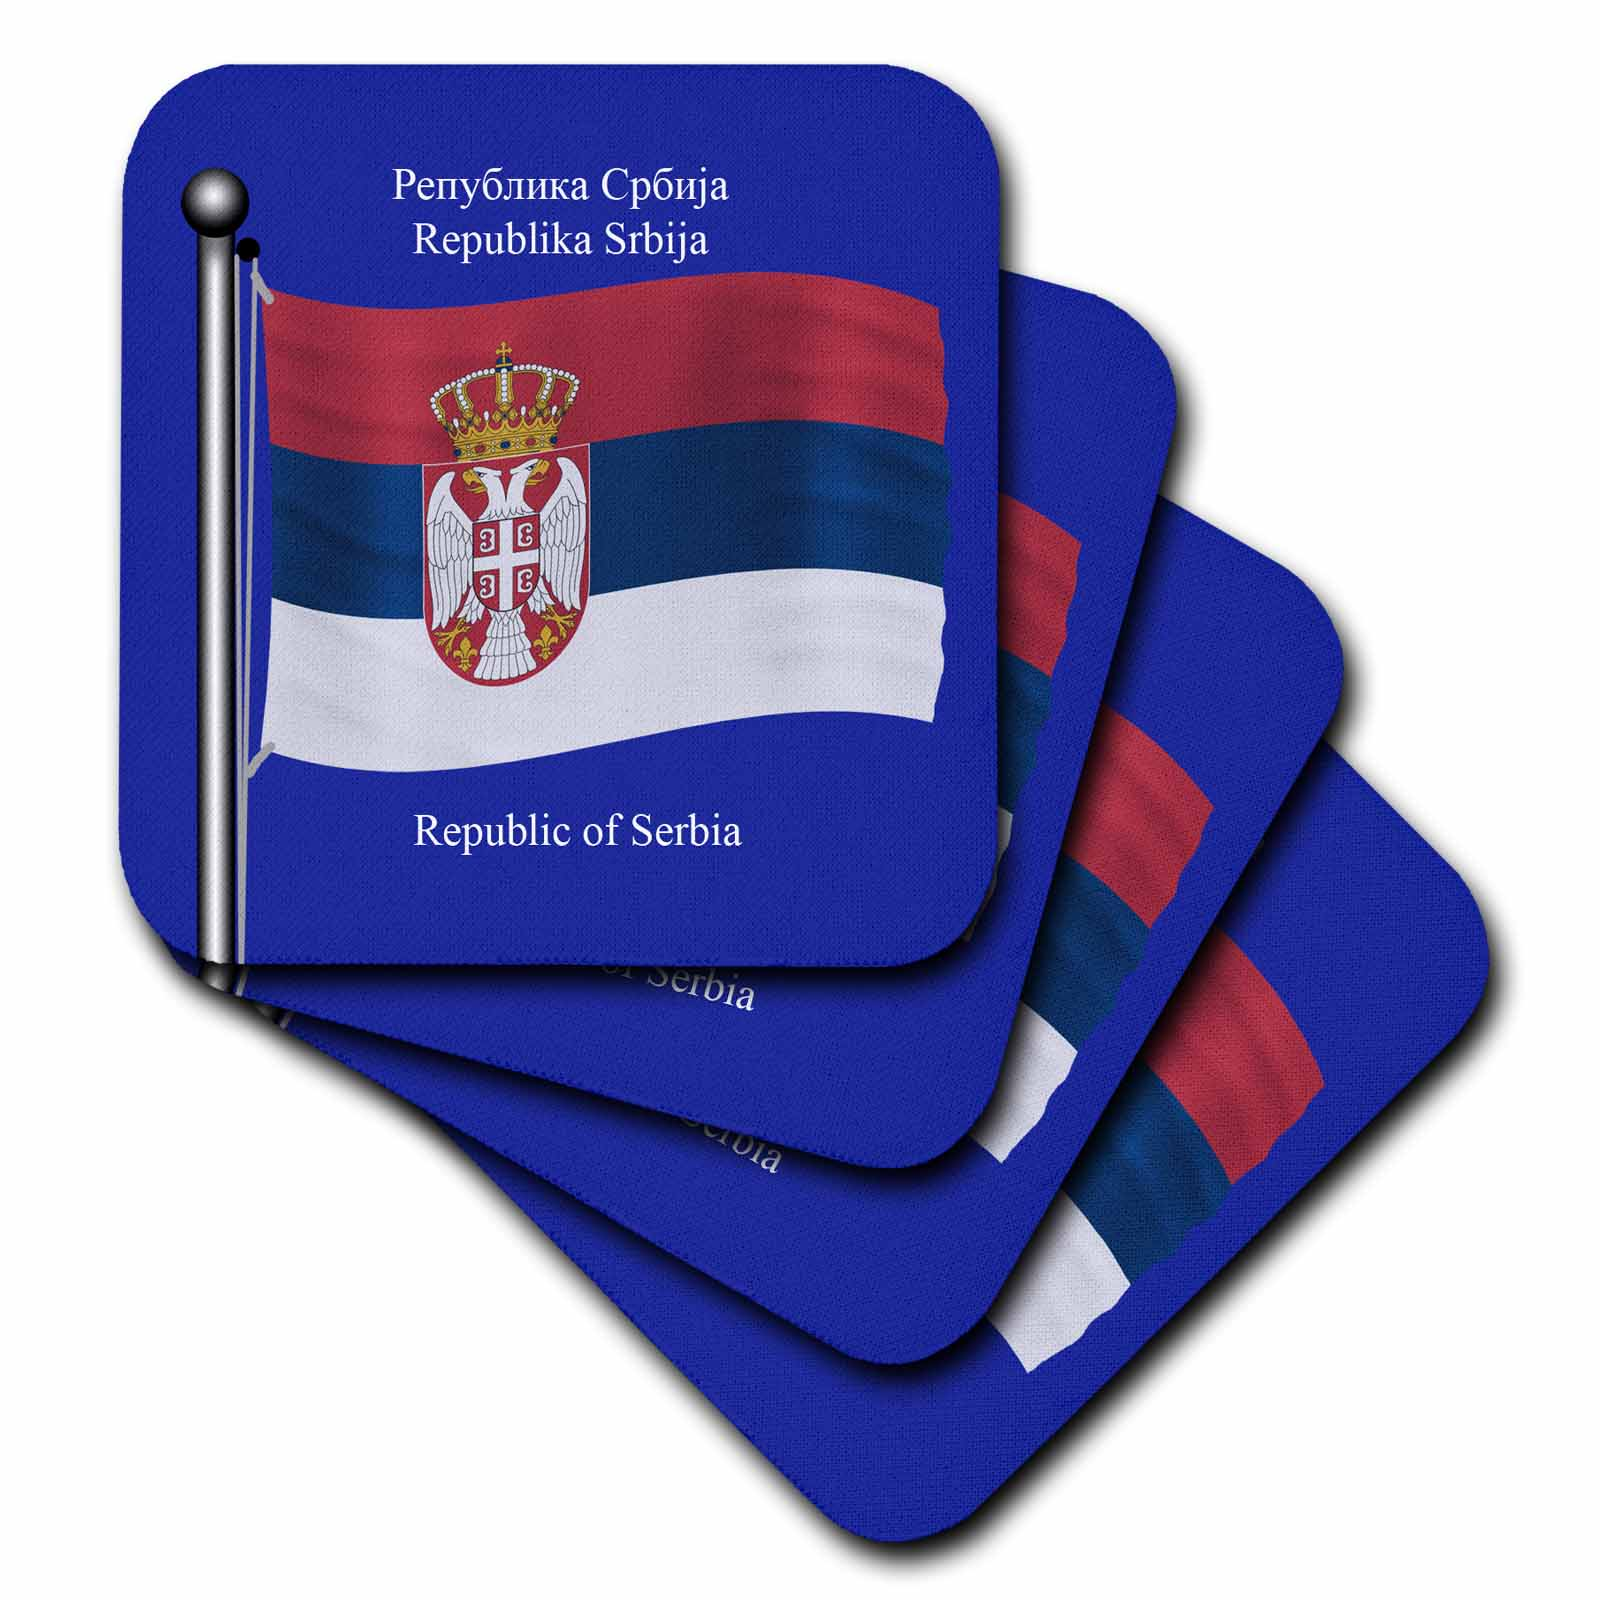 3dRose The flag of Serbia on a blue background with Republic of Serbia in English and Serbian, Soft Coasters, set of 8